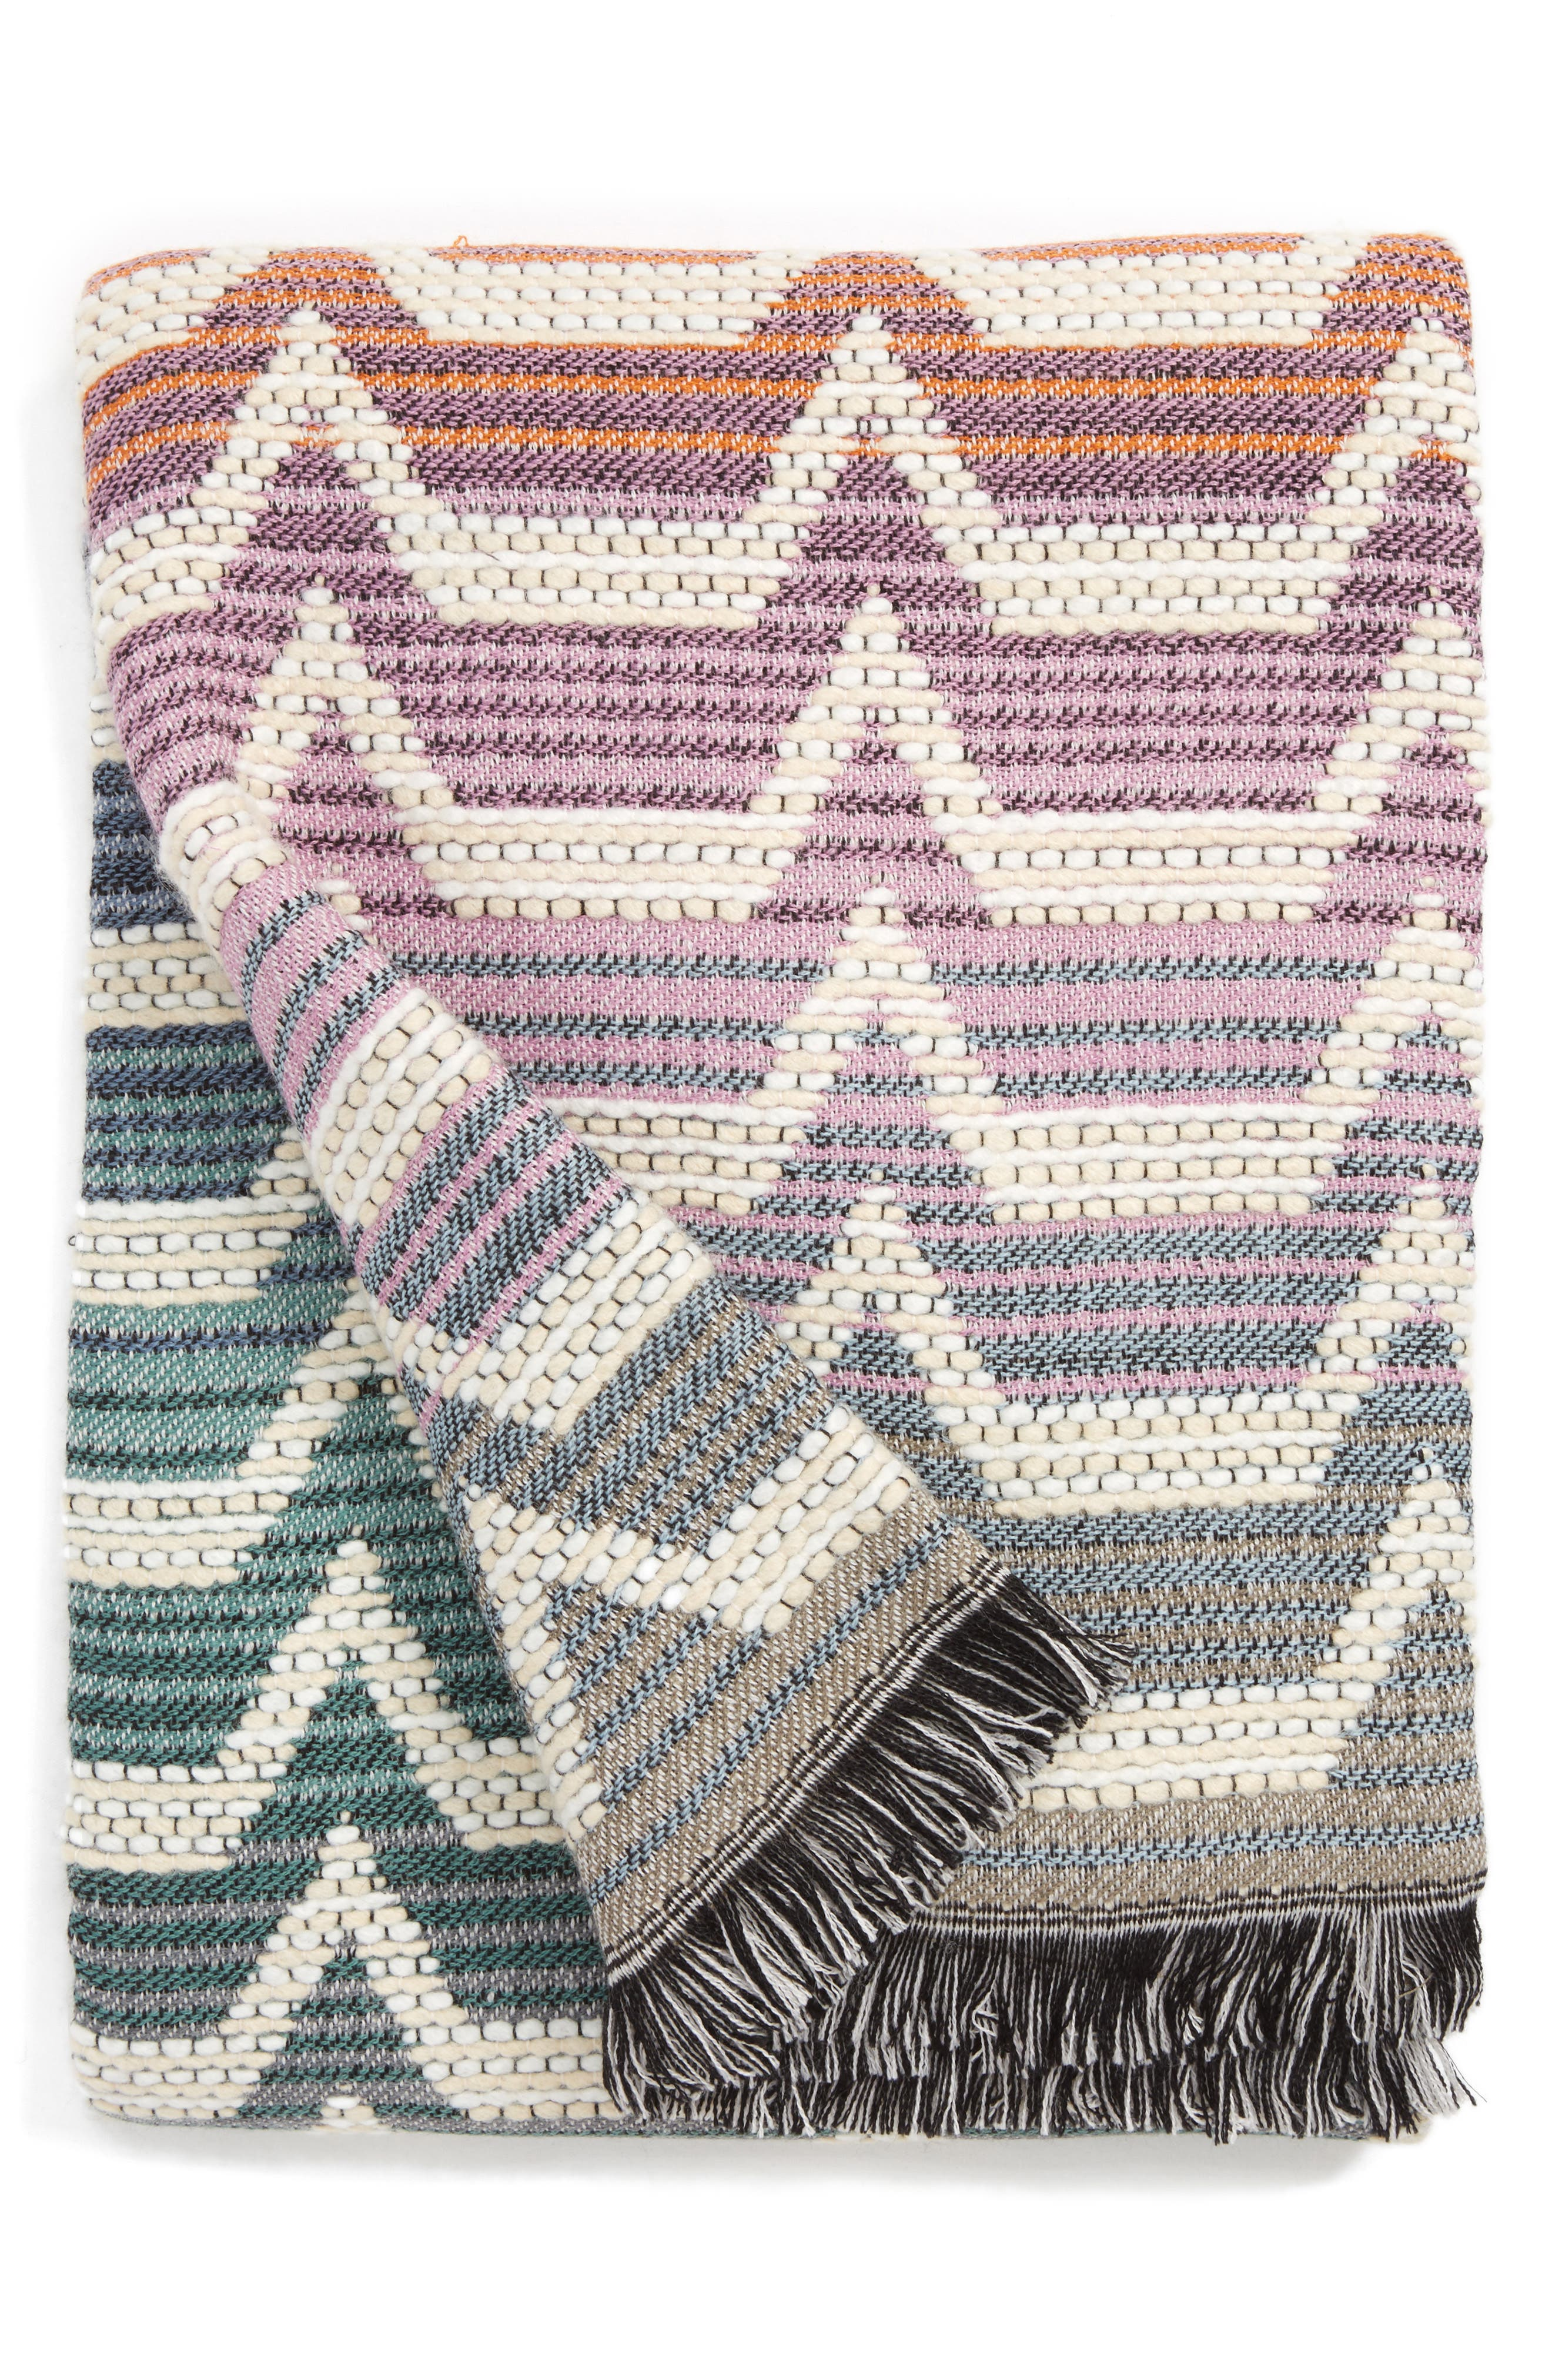 Socrate Throw Blanket,                         Main,                         color, Multi Color